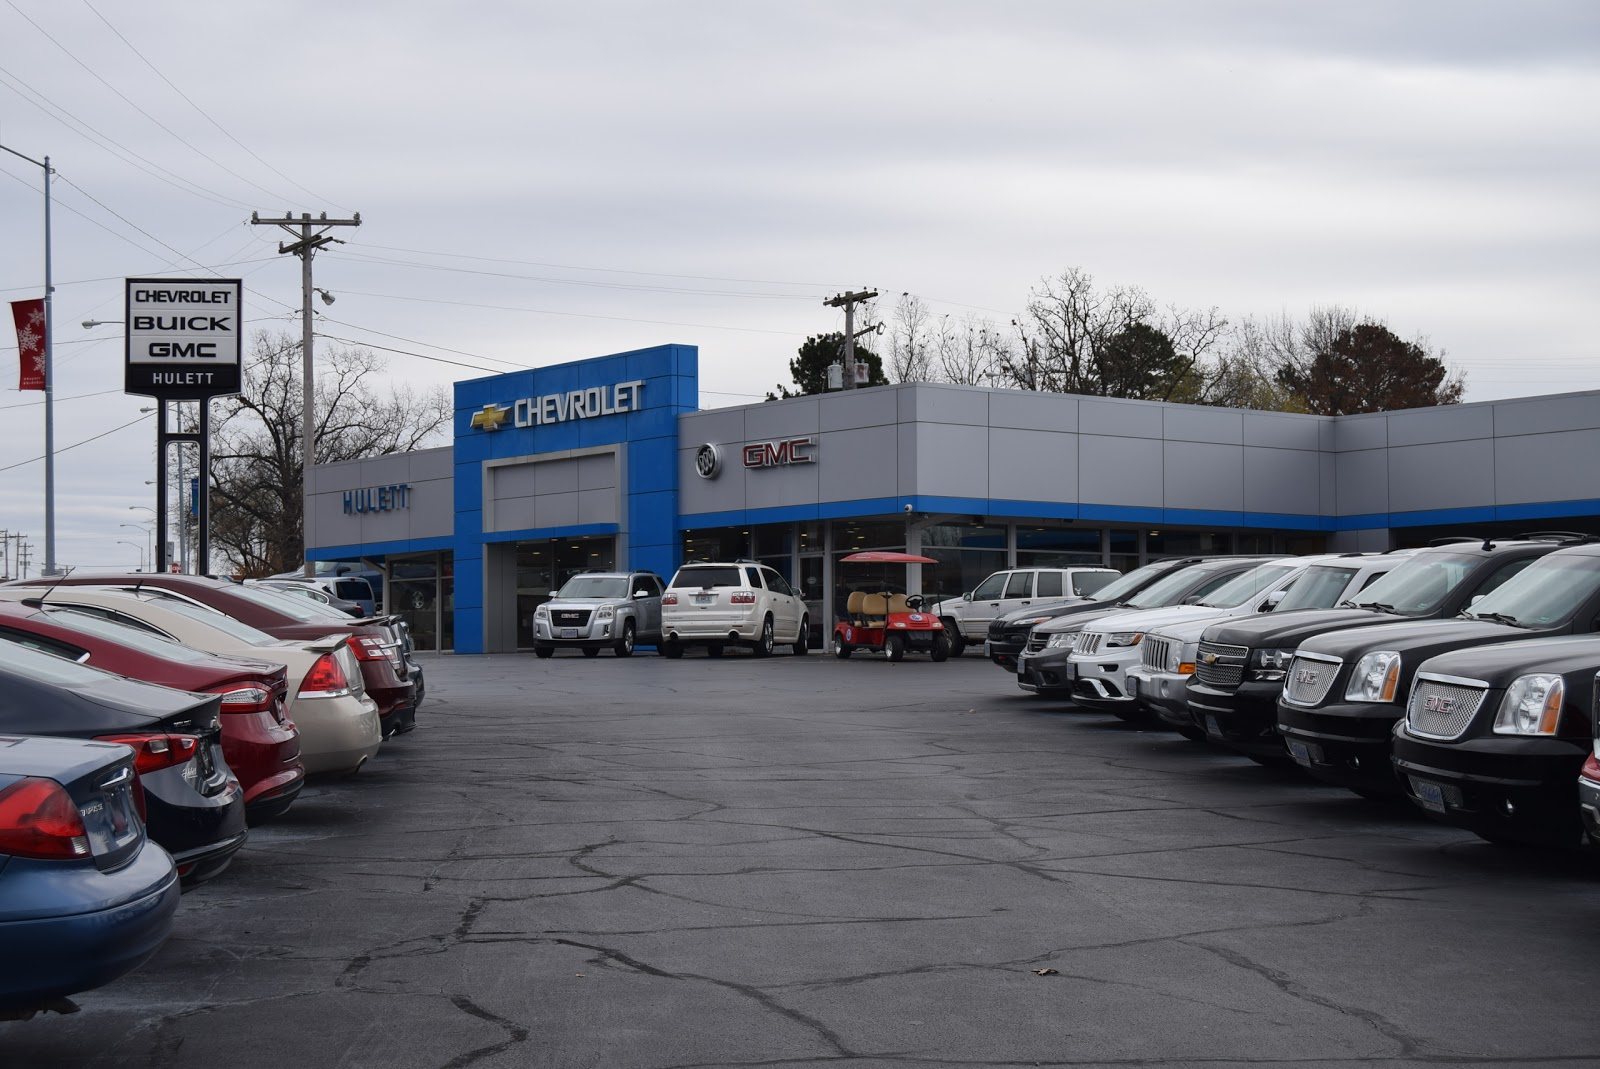 advantages and disadvantages to owning a vehicle List of advantages and disadvantages  one advantage to a diesel powered vehicle is  earn respect at local mechanic shop and gas stations for owning.